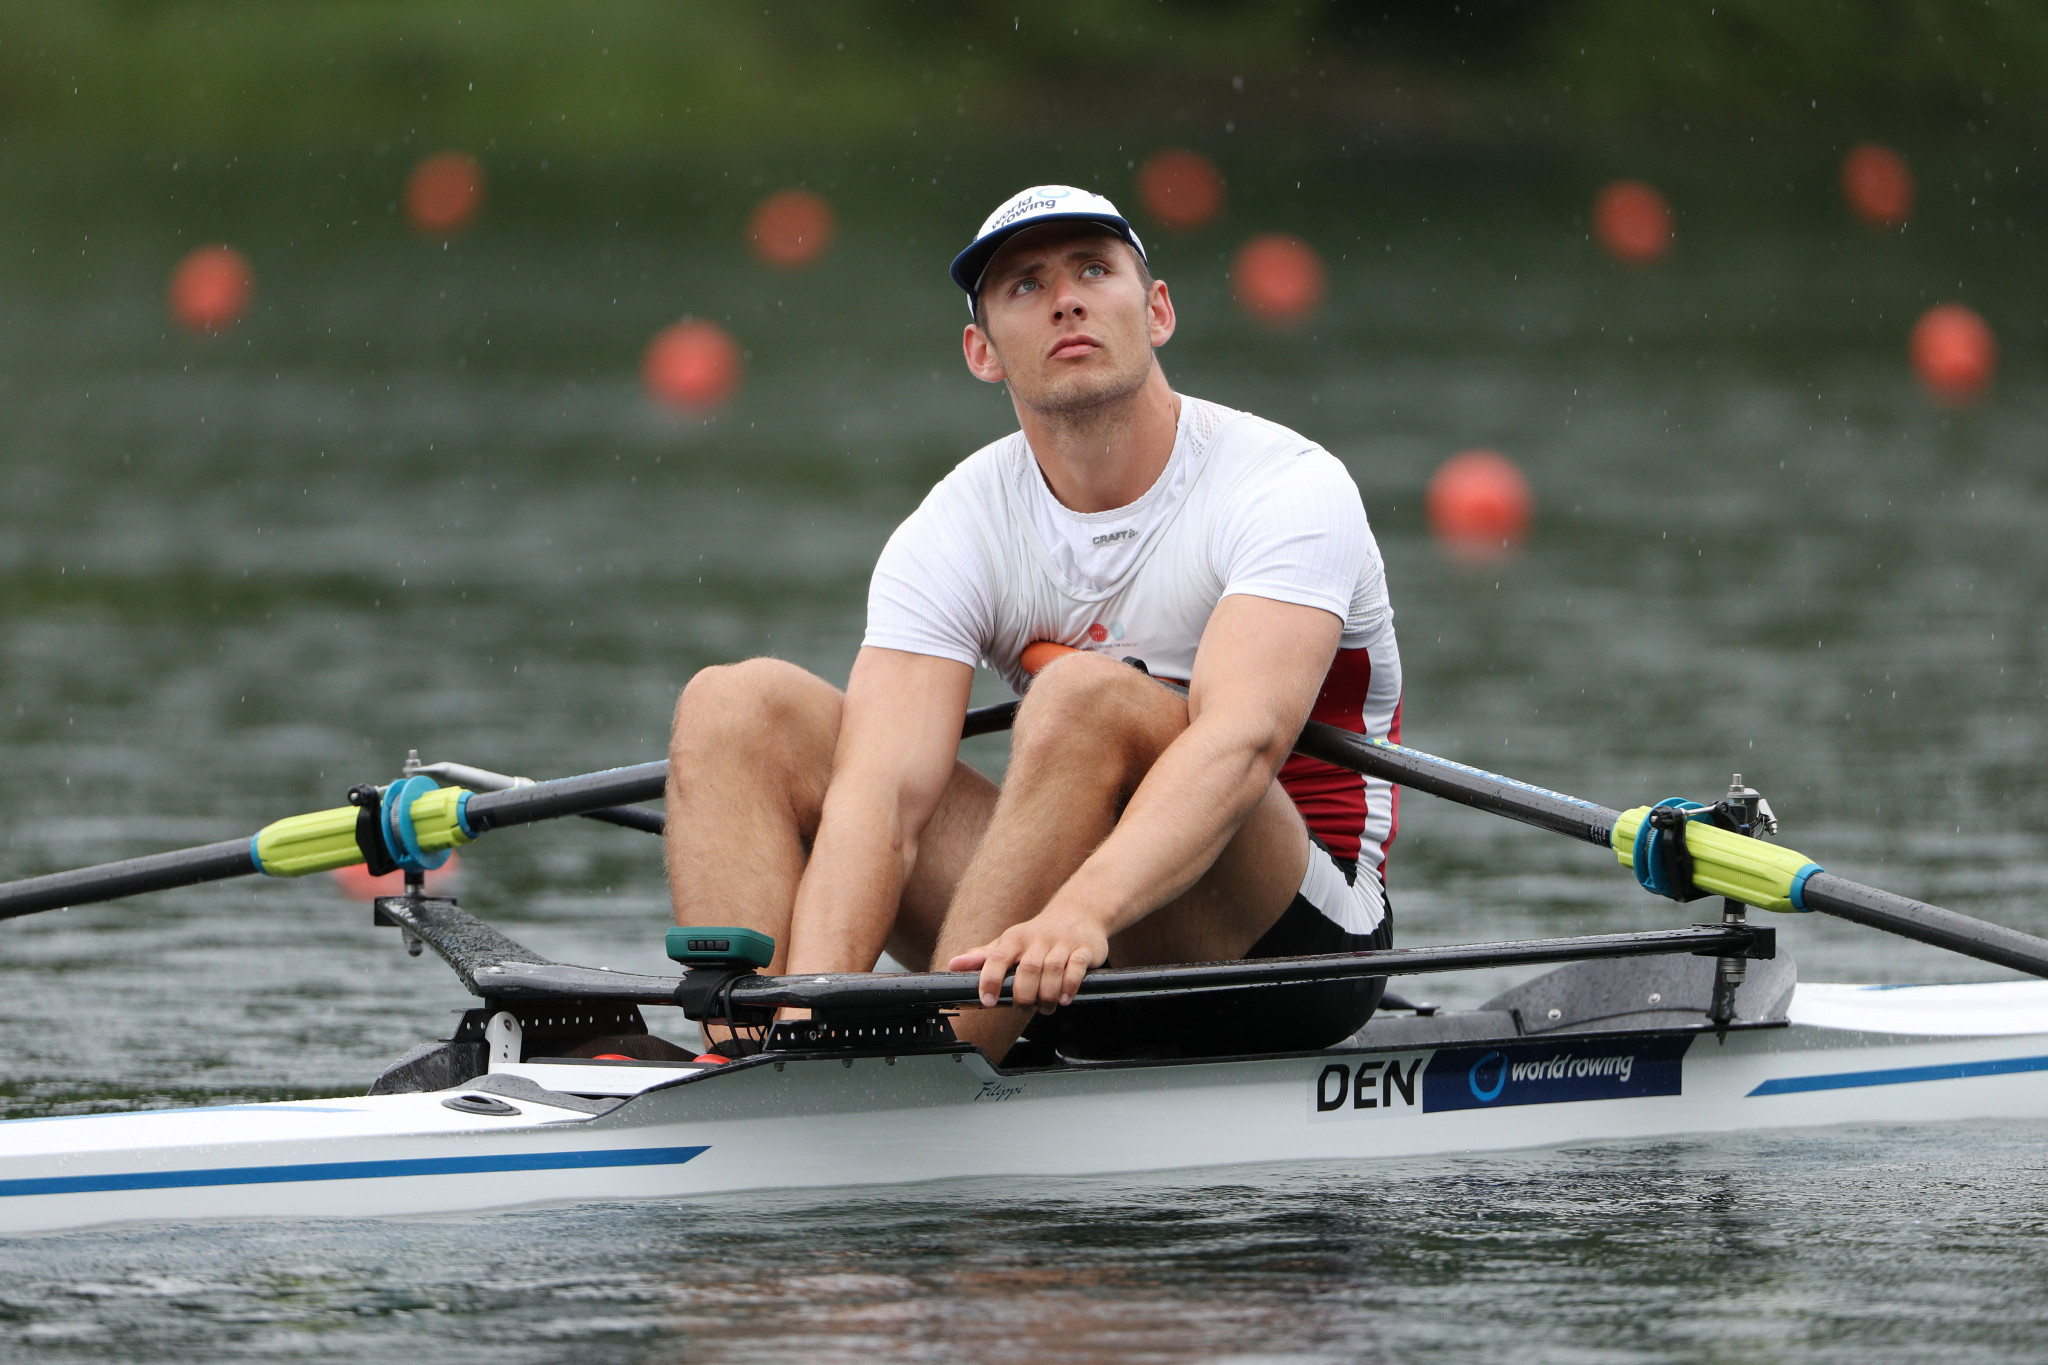 Sverri Nielsen earned gold at the European Indoor Rowing Championships ©Getty Images